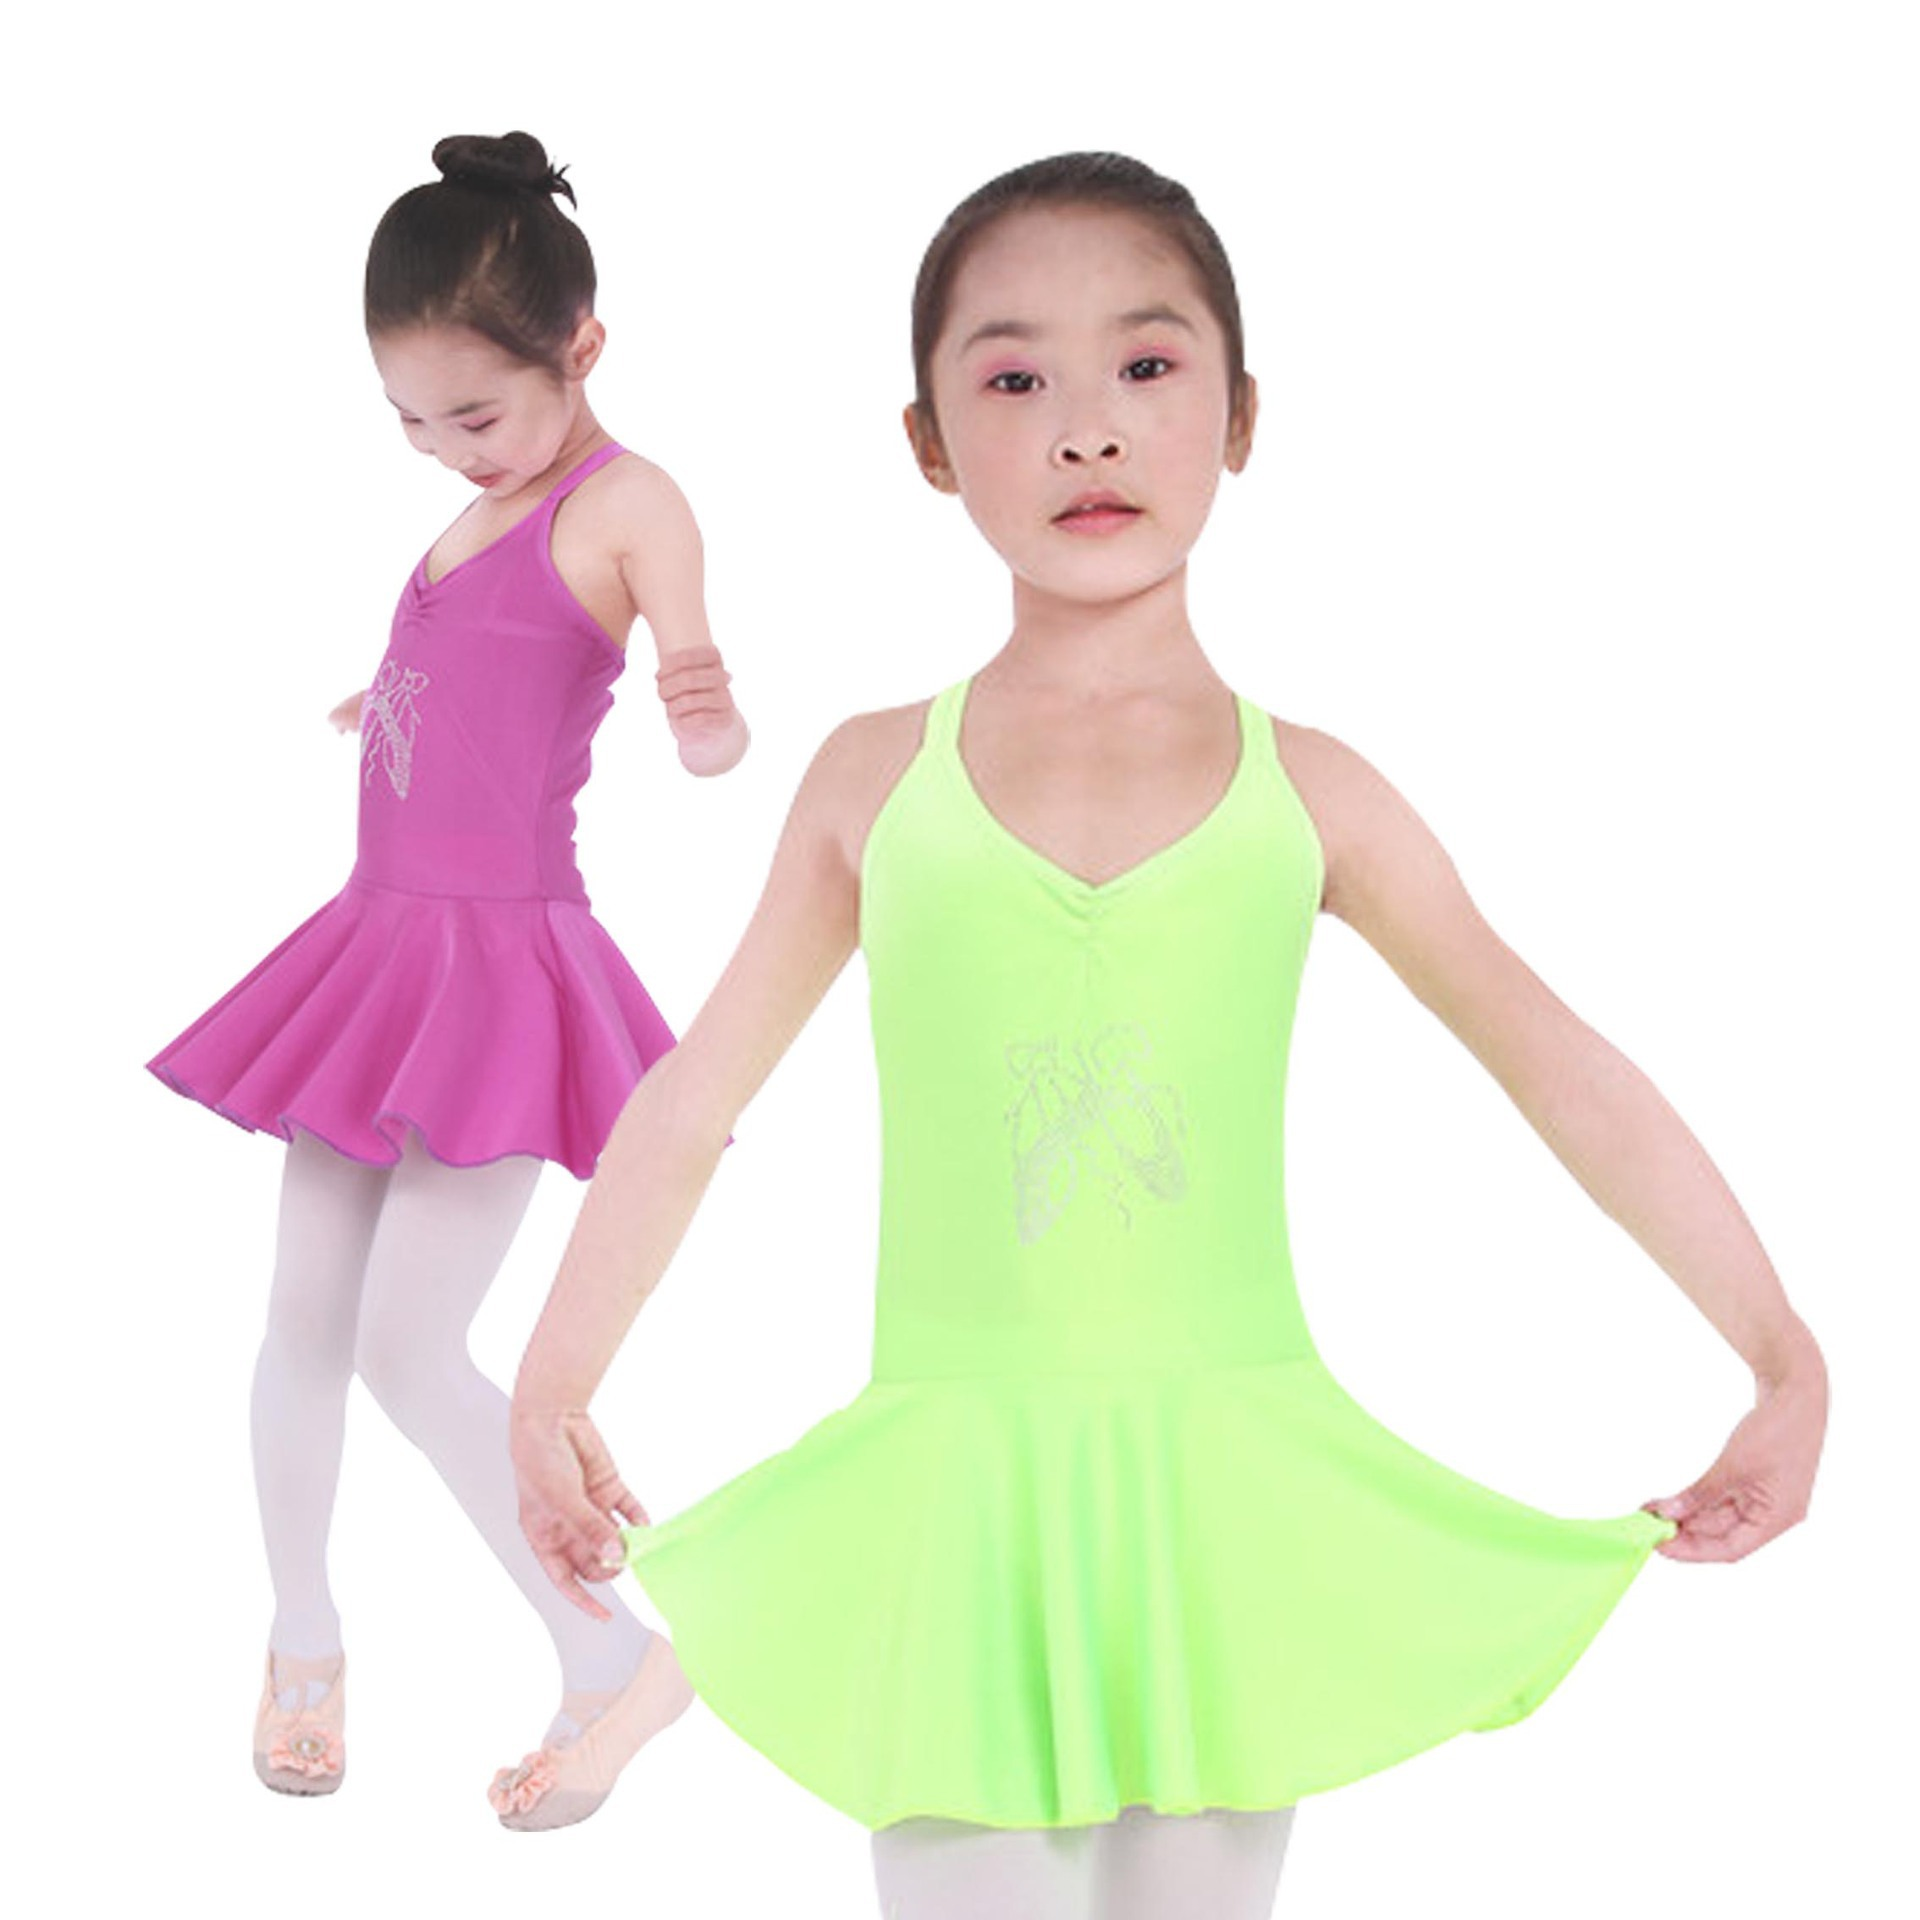 41494e1e1 Cheap Green Leotard For Girls